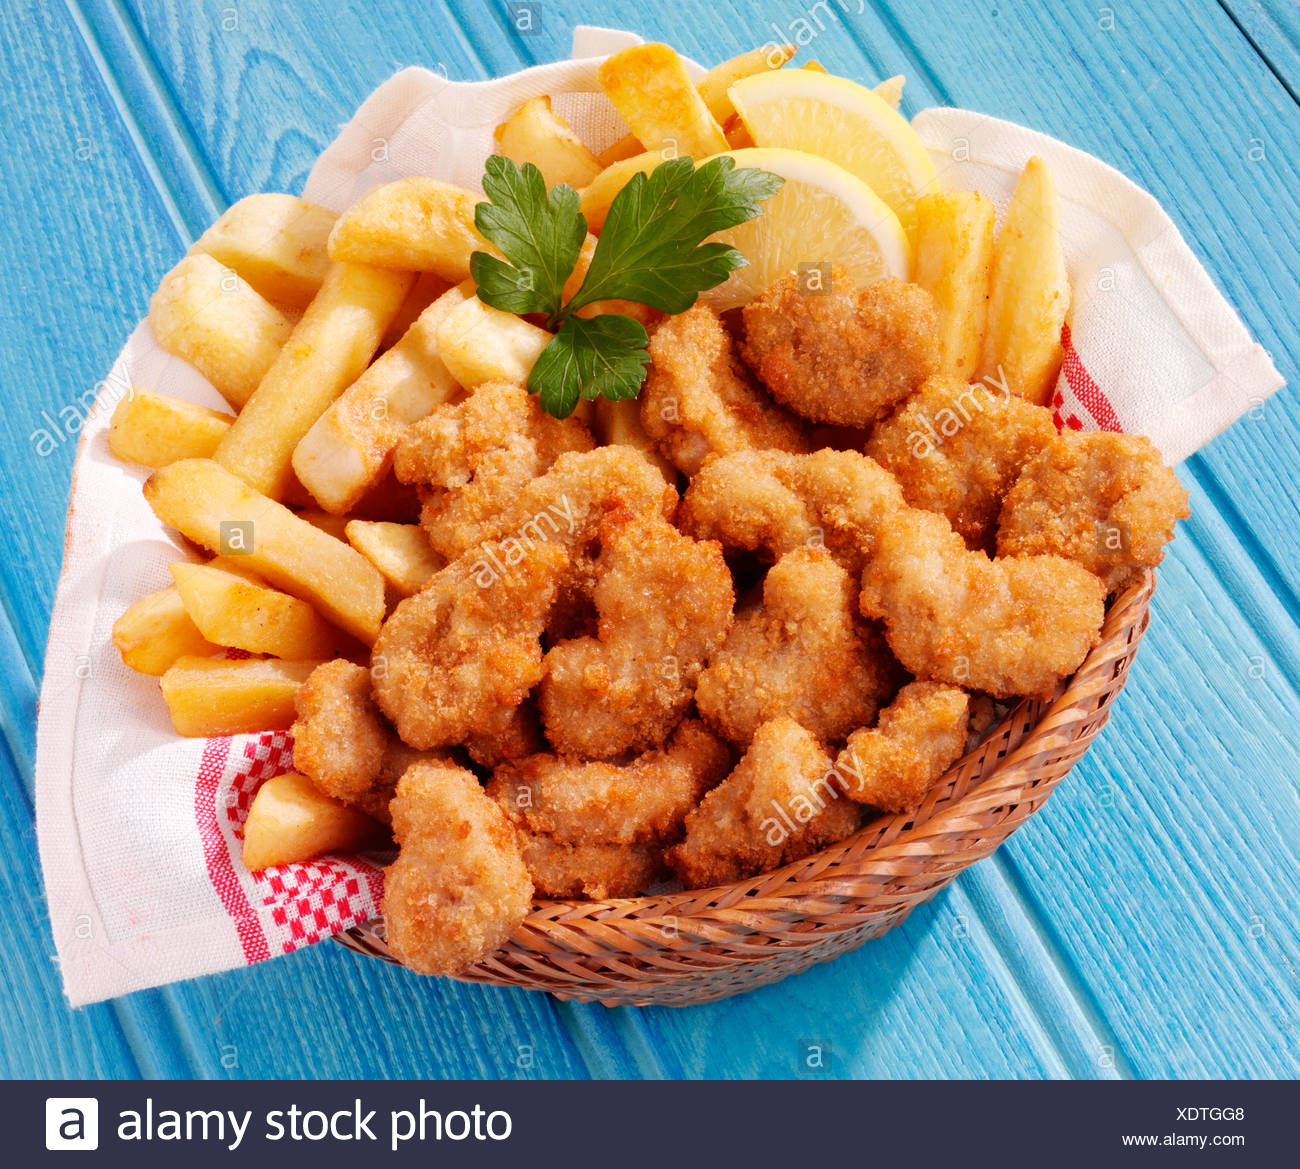 BASKET OF SCAMPI AND CHIPS - Stock Image